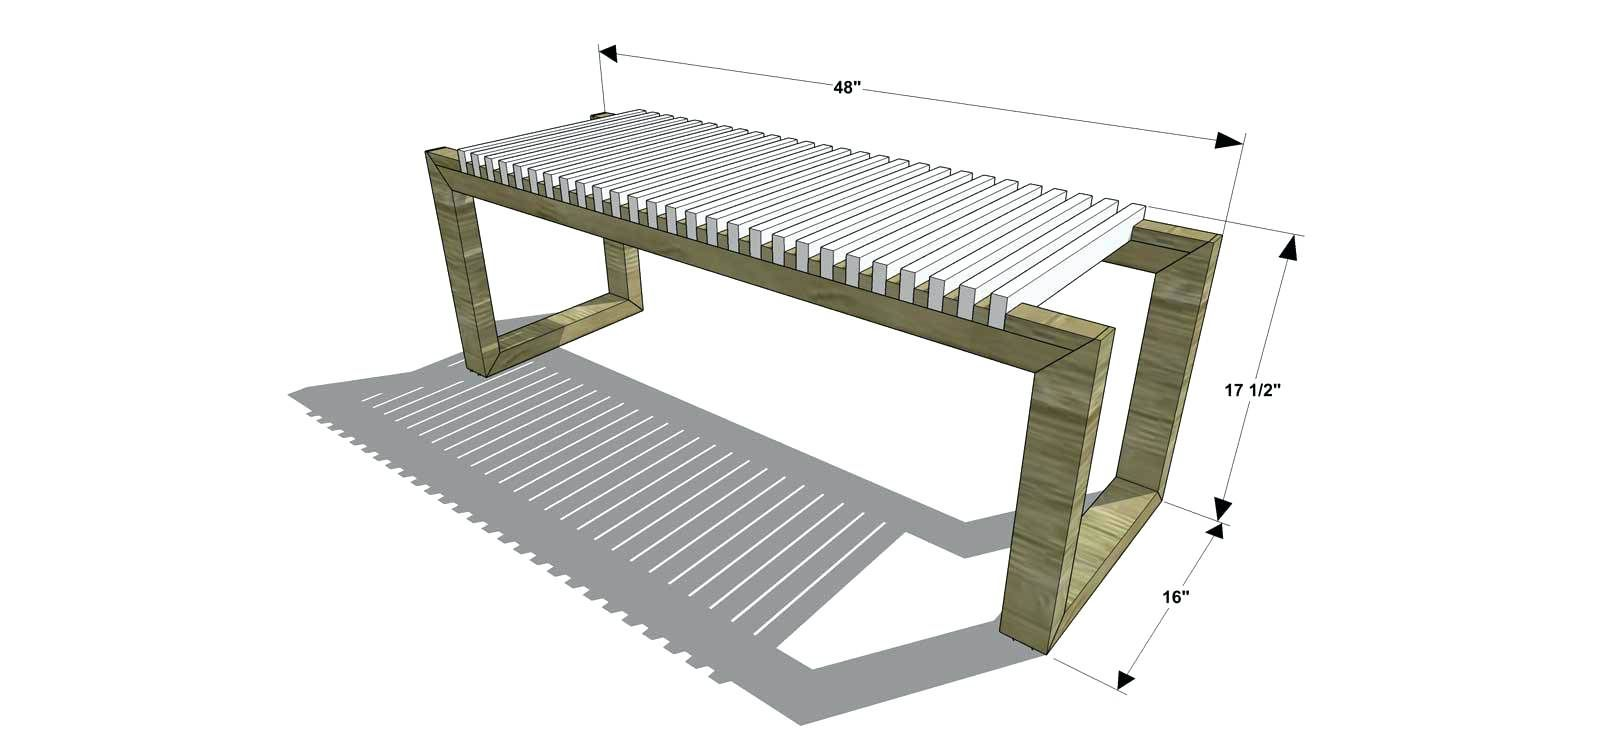 Roubo Workbench Plans Pdf Woodworking Dimensions Awesome